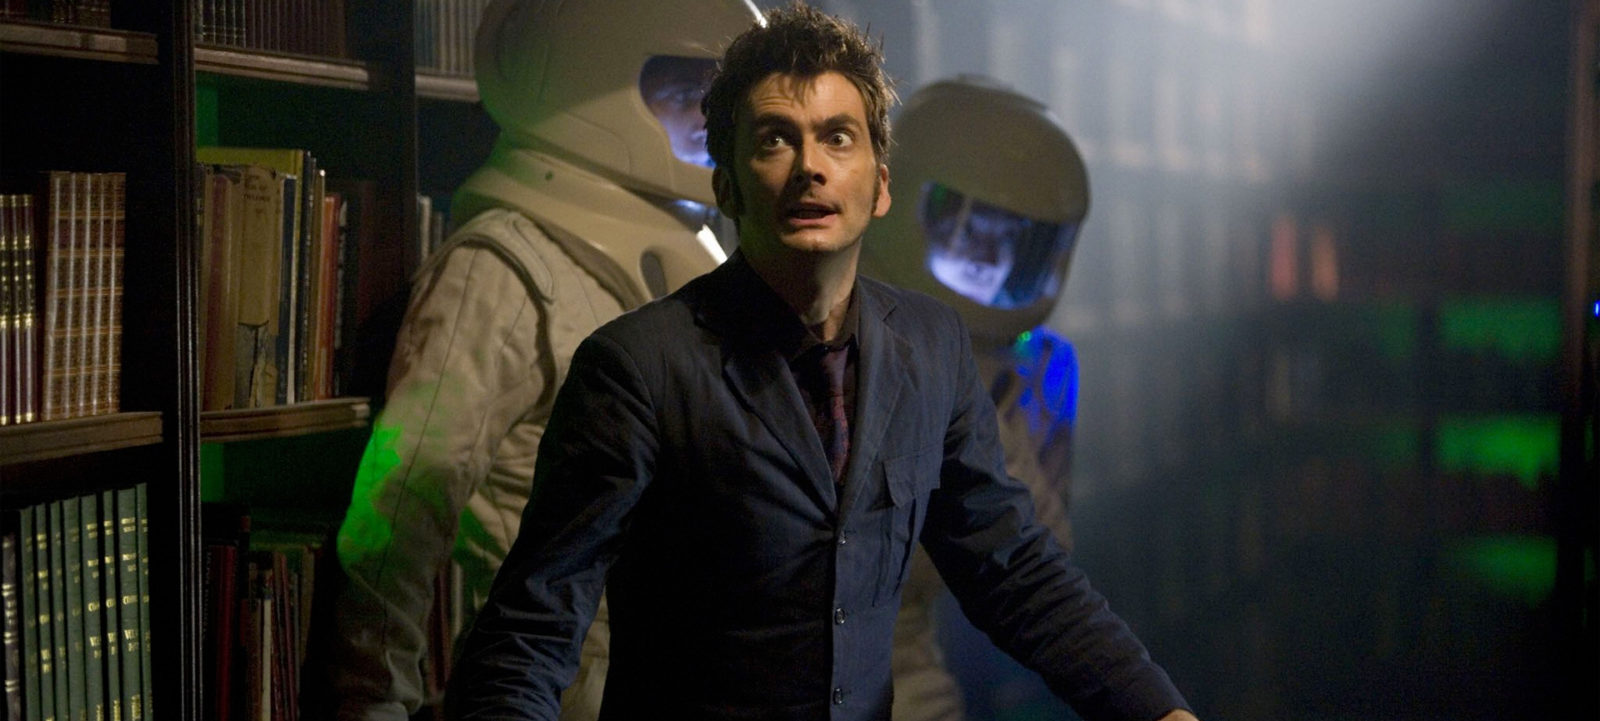 Doctor Who': 10 Things You May Not Know About 'Forest of the